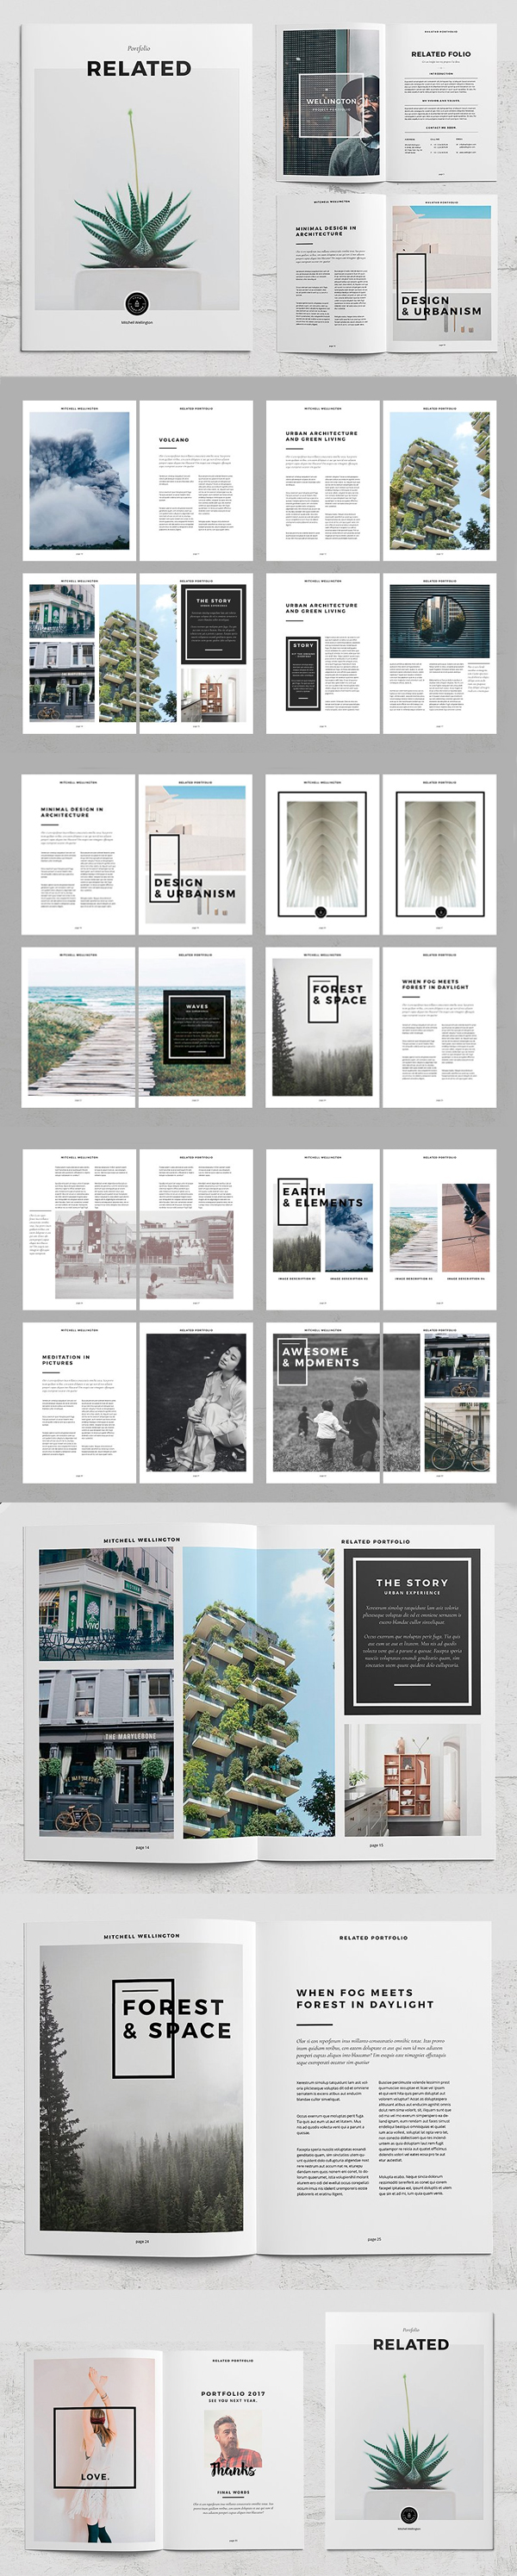 100 Professional Corporate Brochure Templates - 93